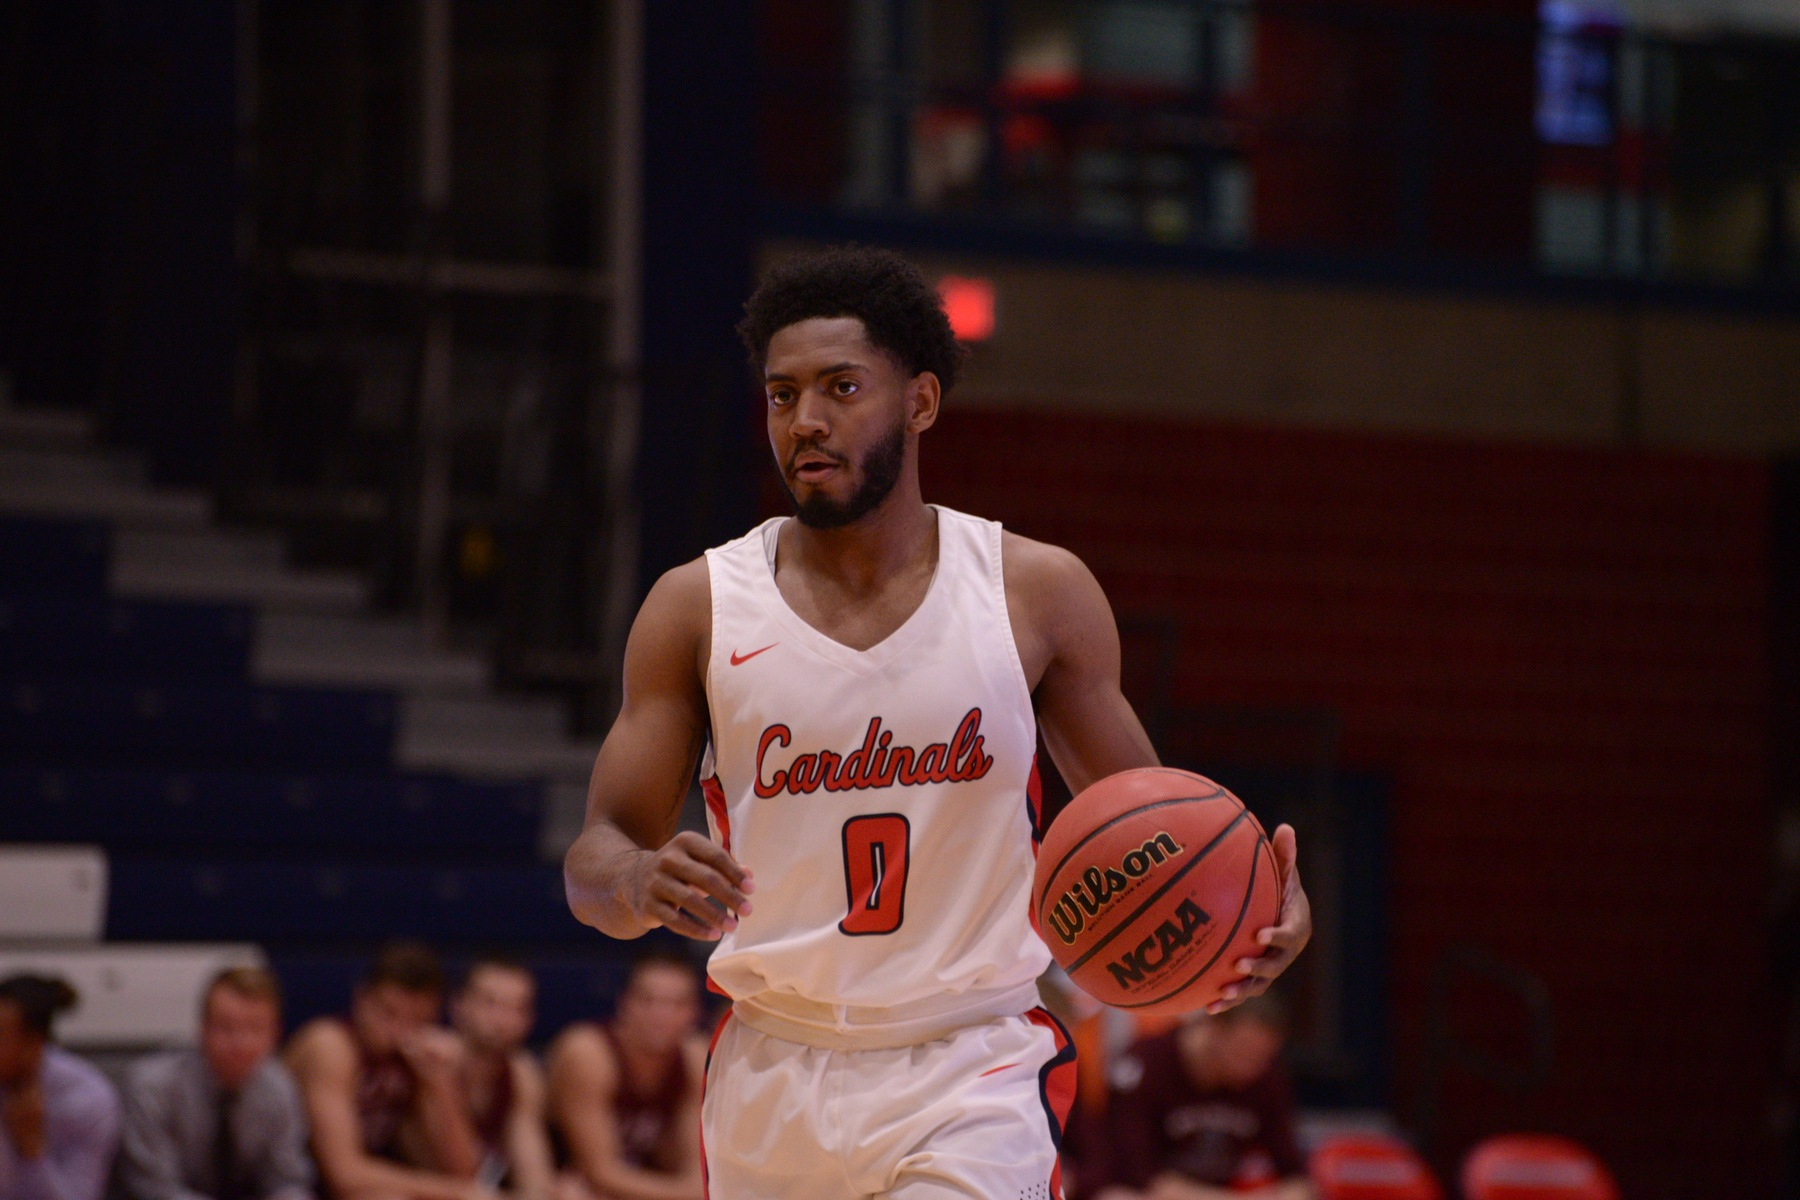 Cardinals close-out for 75-67 victory at Purdue Northwest